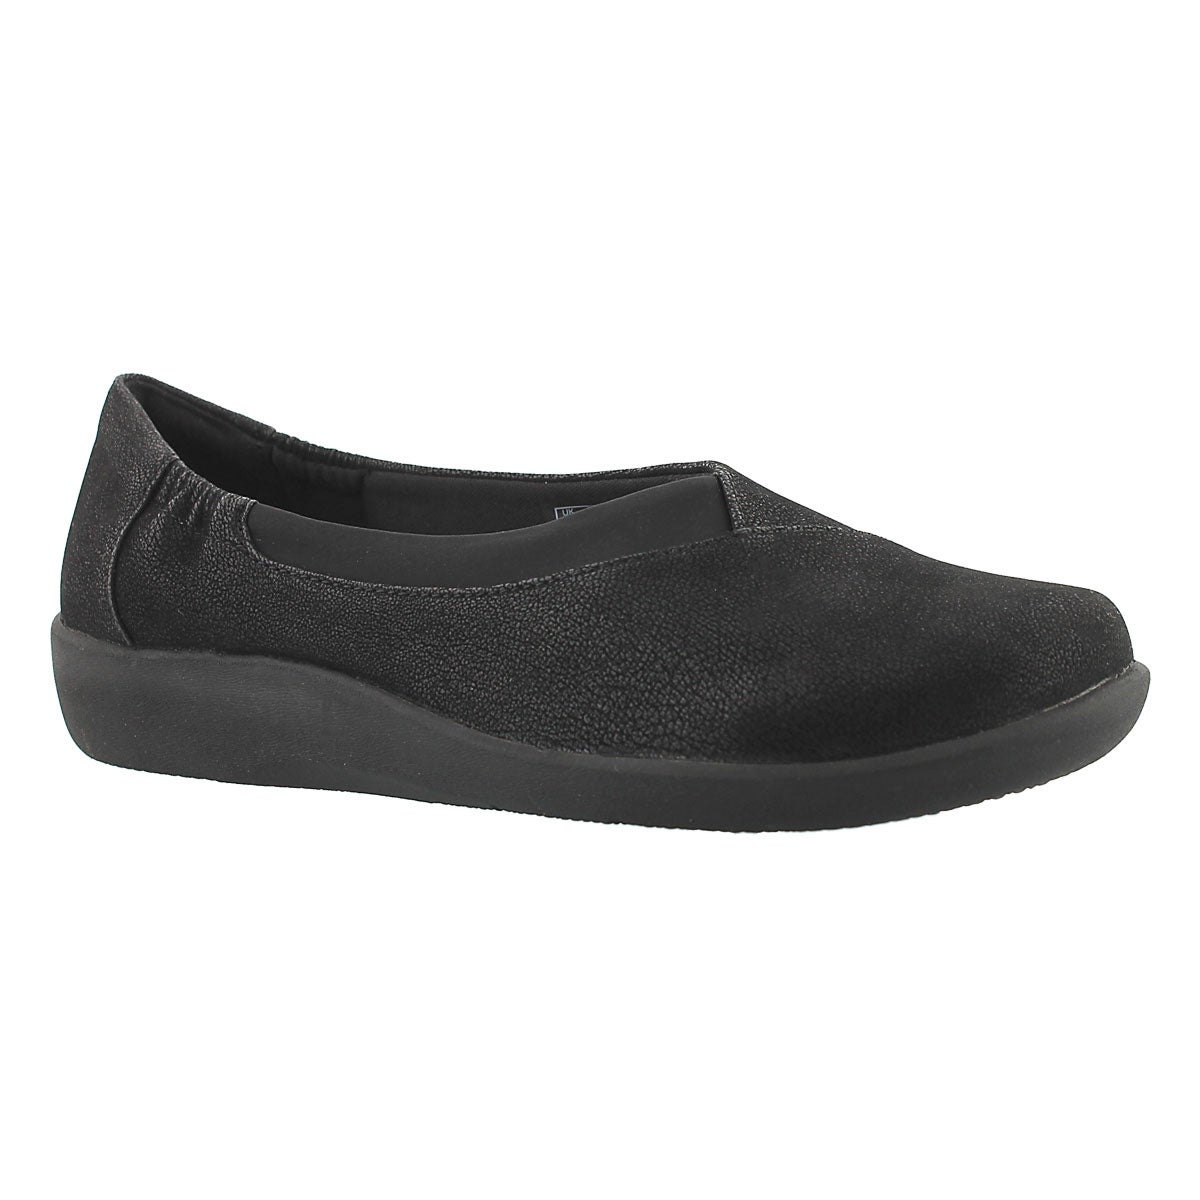 Women's SILLIAN JETAY black casual slip ons